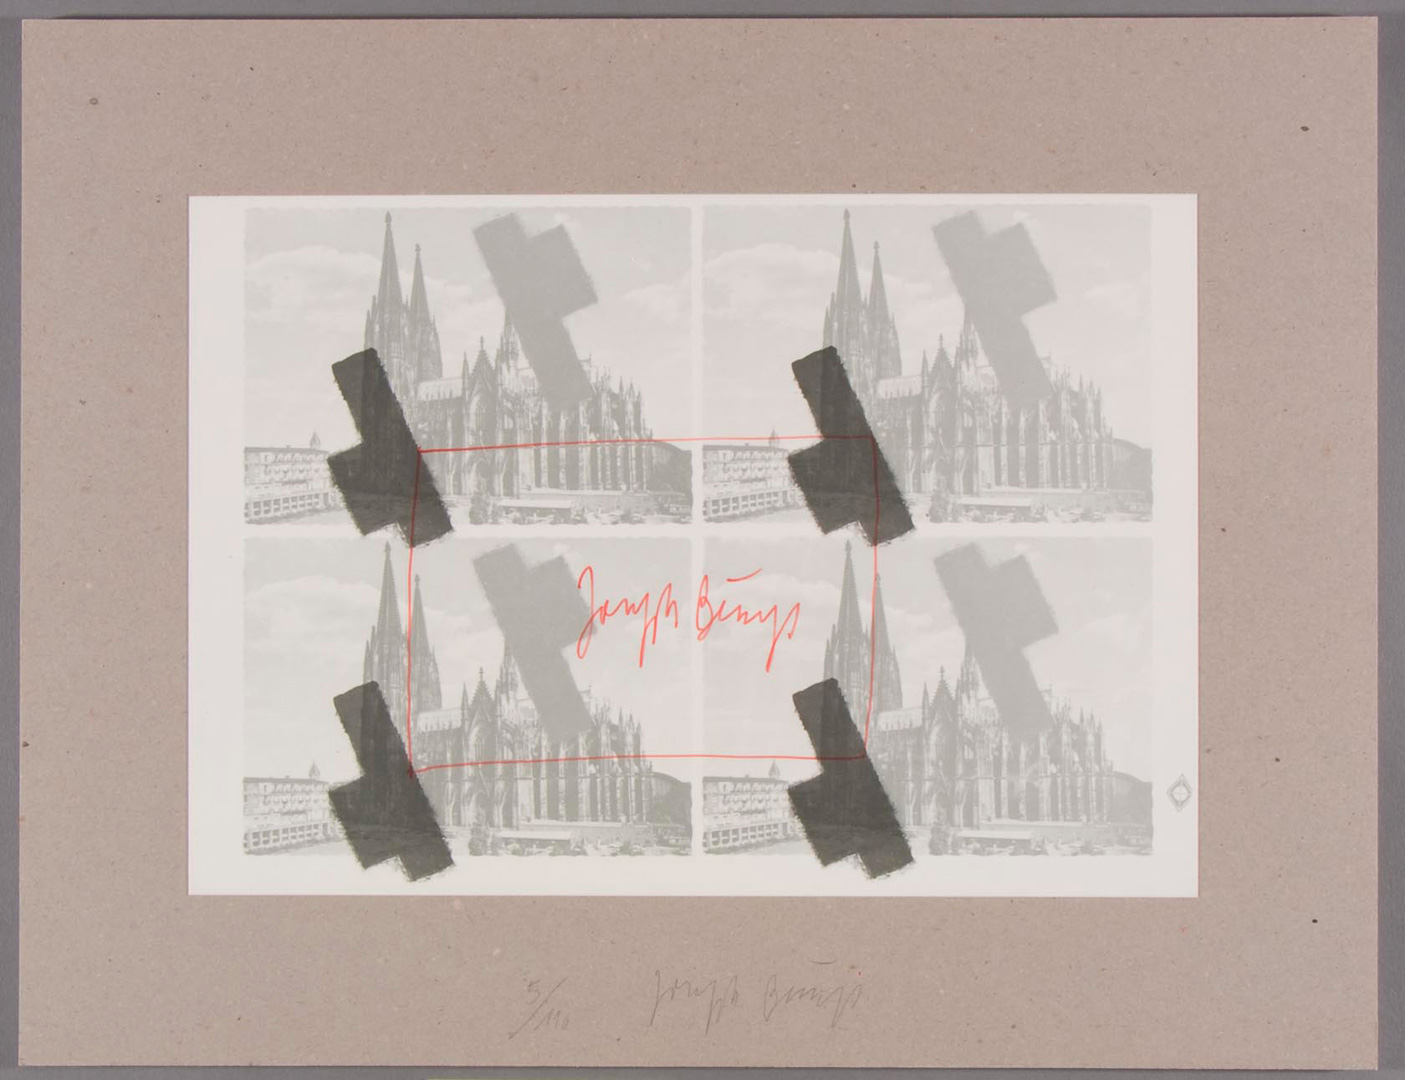 Joseph Beuys - halbiertes Filzkreuz über Köln, 1977, misprintings of postcards. Offset, with handwritten additions, mounted on gray cardboard